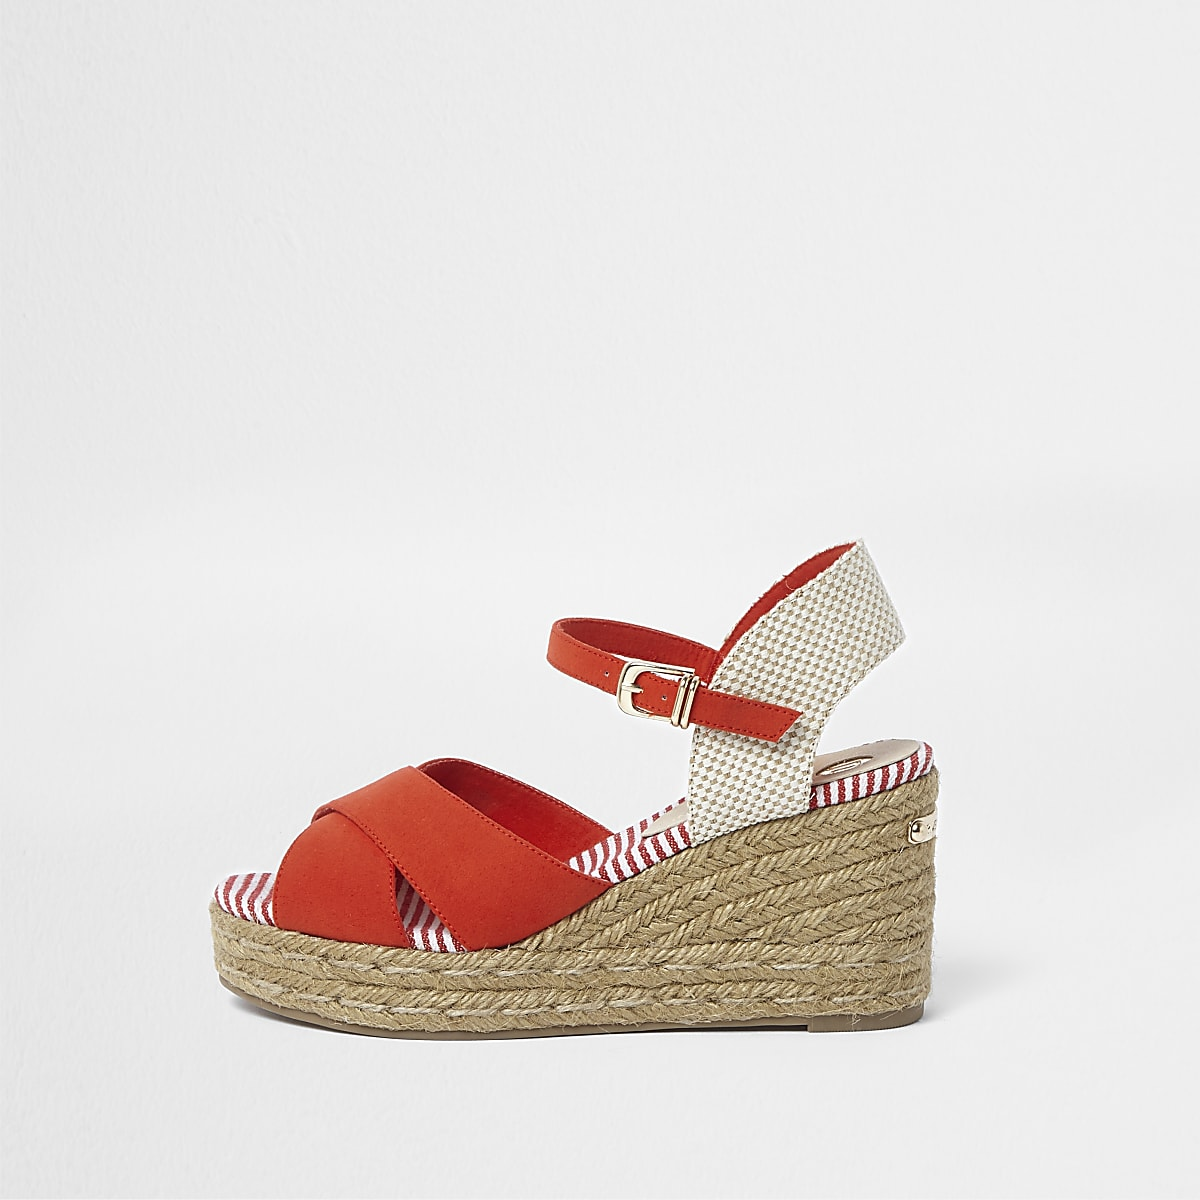 Red cross strap espadrille wedge sandals - Sandals - Shoes   Boots - women